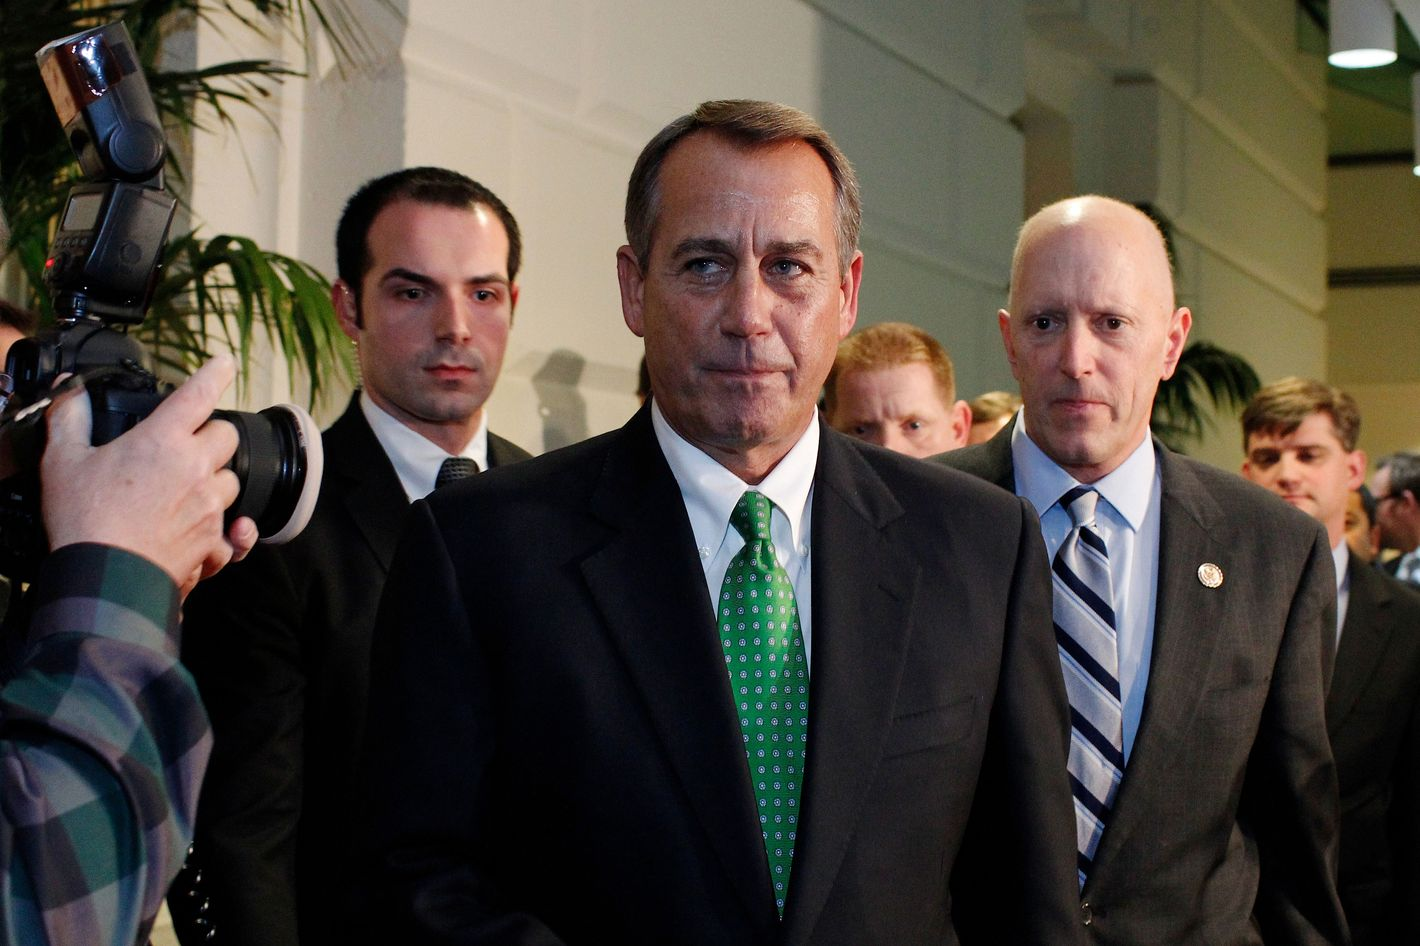 House Speaker John Boehner (R-OH) walks out after a second meeting with House Republicans at the US Capitol on January 1, 2013 in Washington, DC. Lawmakers are under pressure to pass at least some form of fiscal cliff crisis legislation before financial markets open on Wednesday, but it was increasingly unclear whether that could be done.